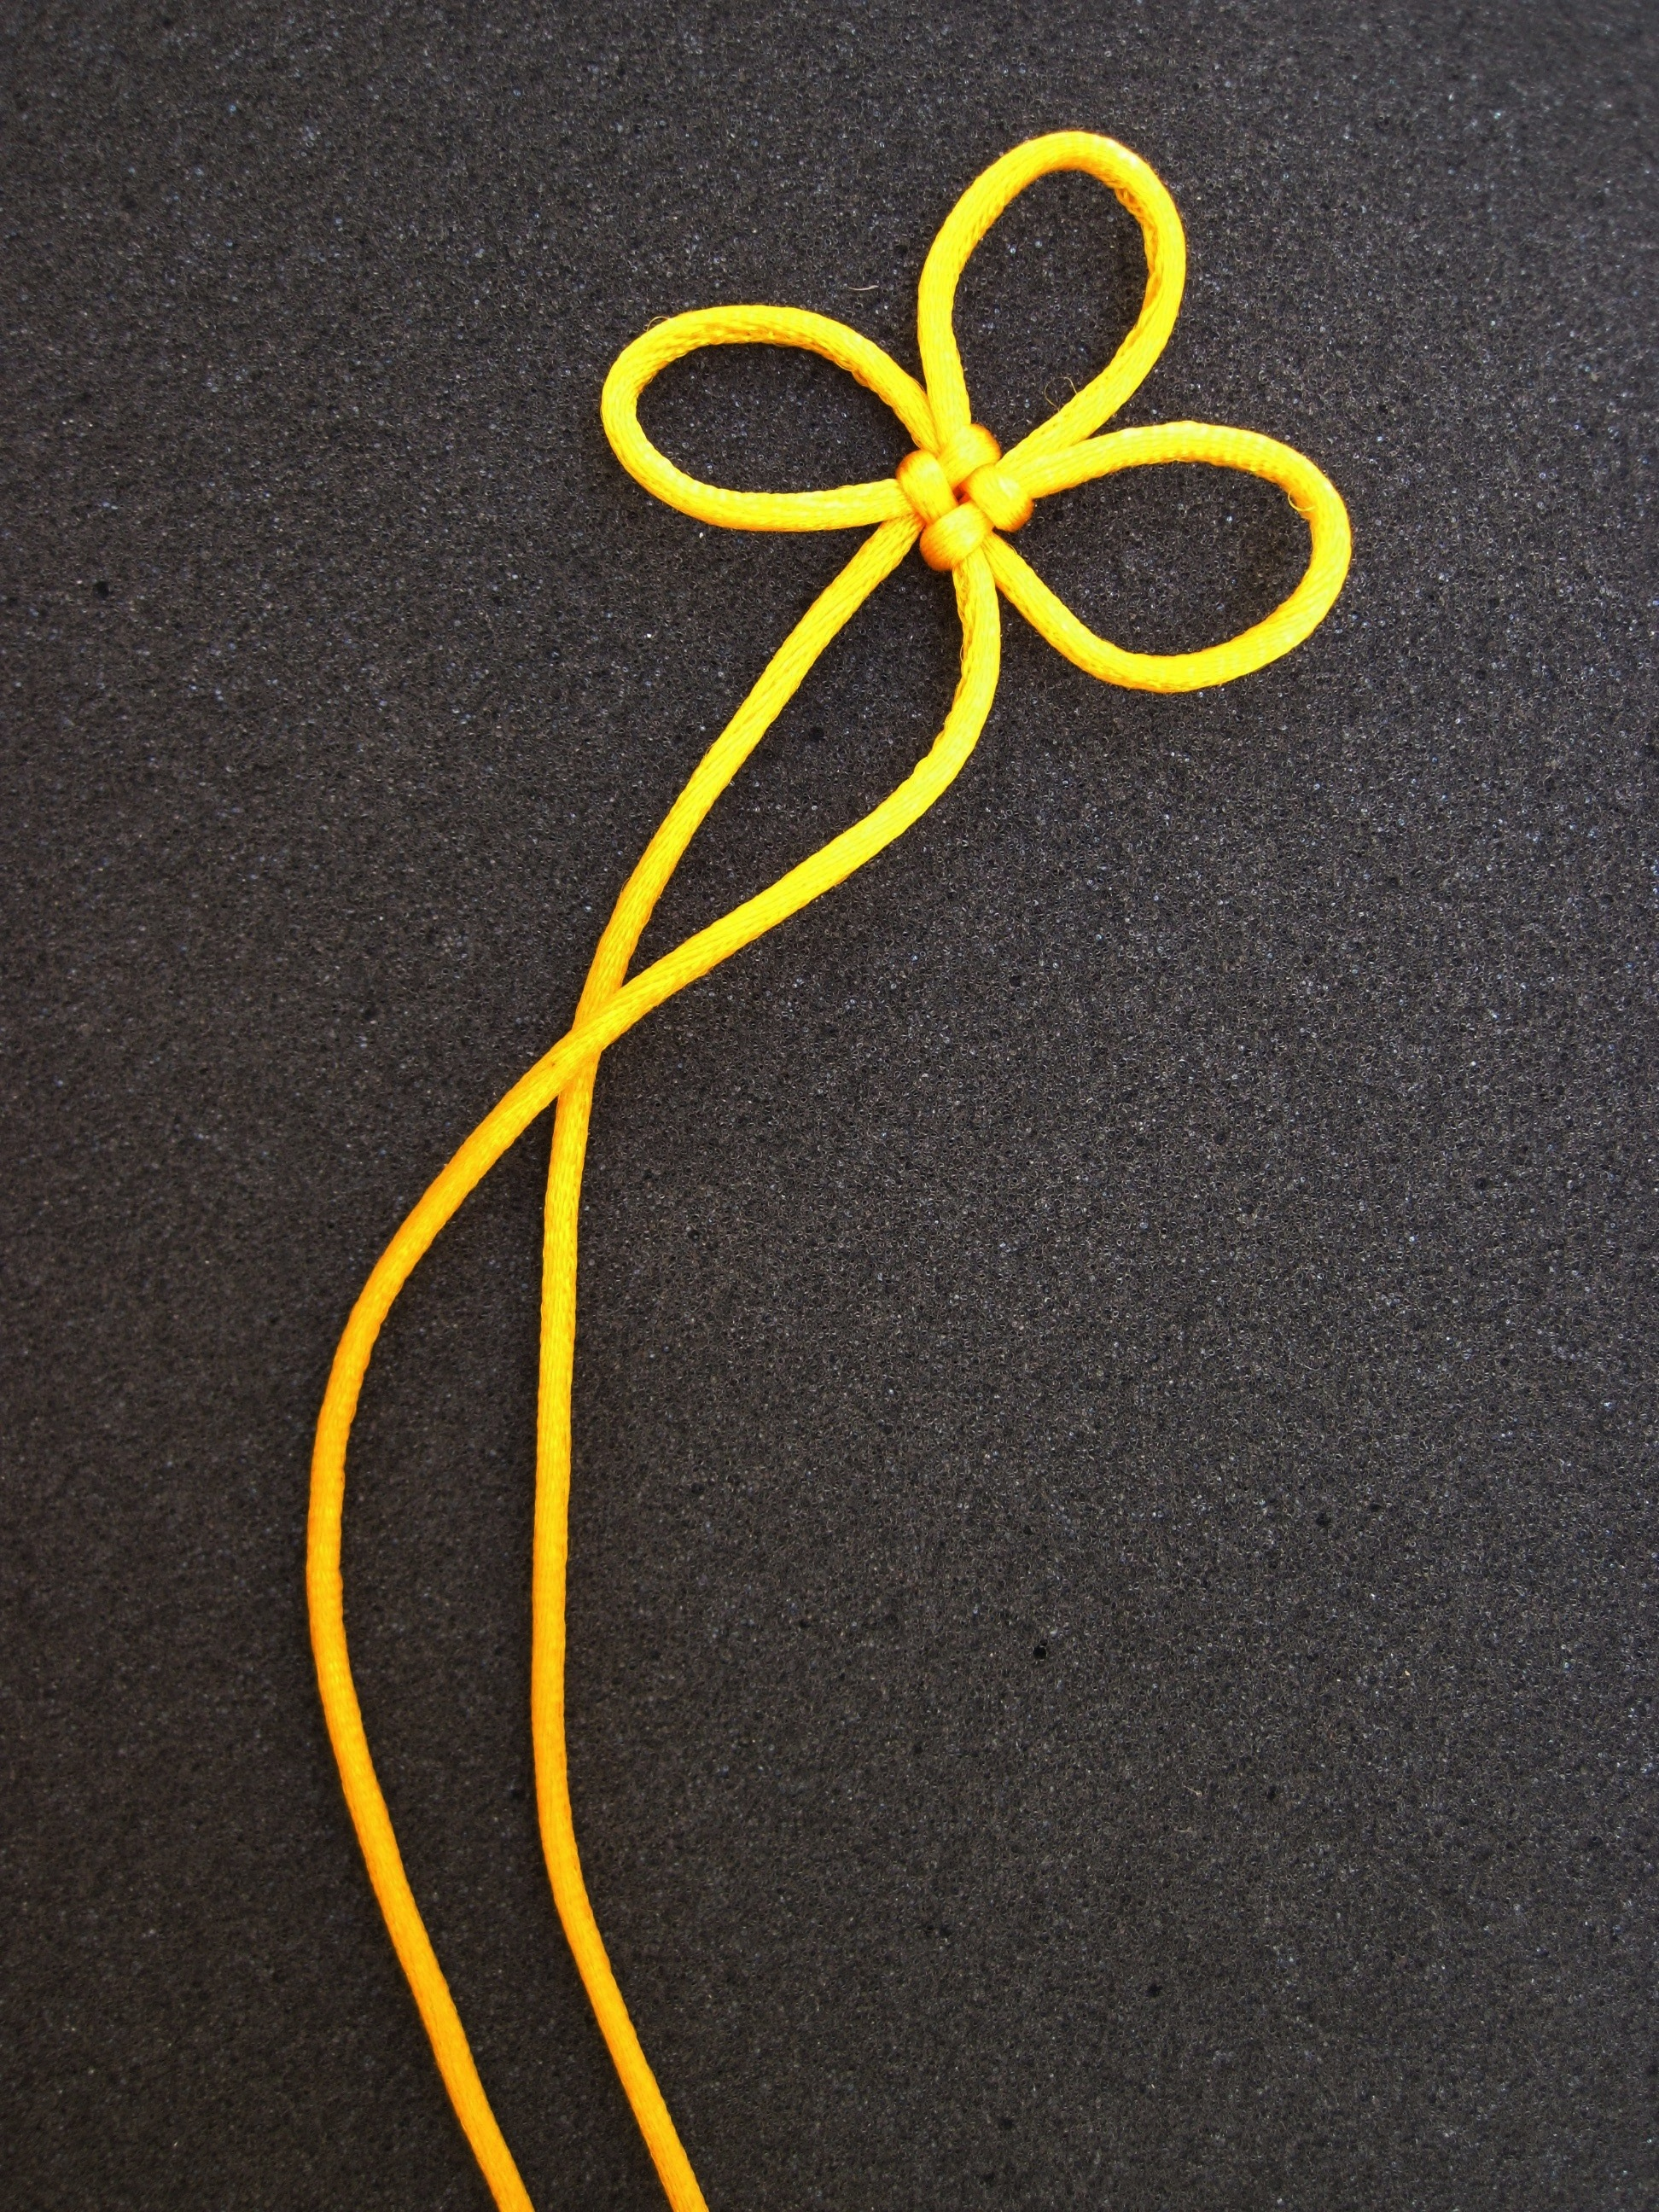 Picture of Chinese Knot Art: the 3-Leaf Clover Knot